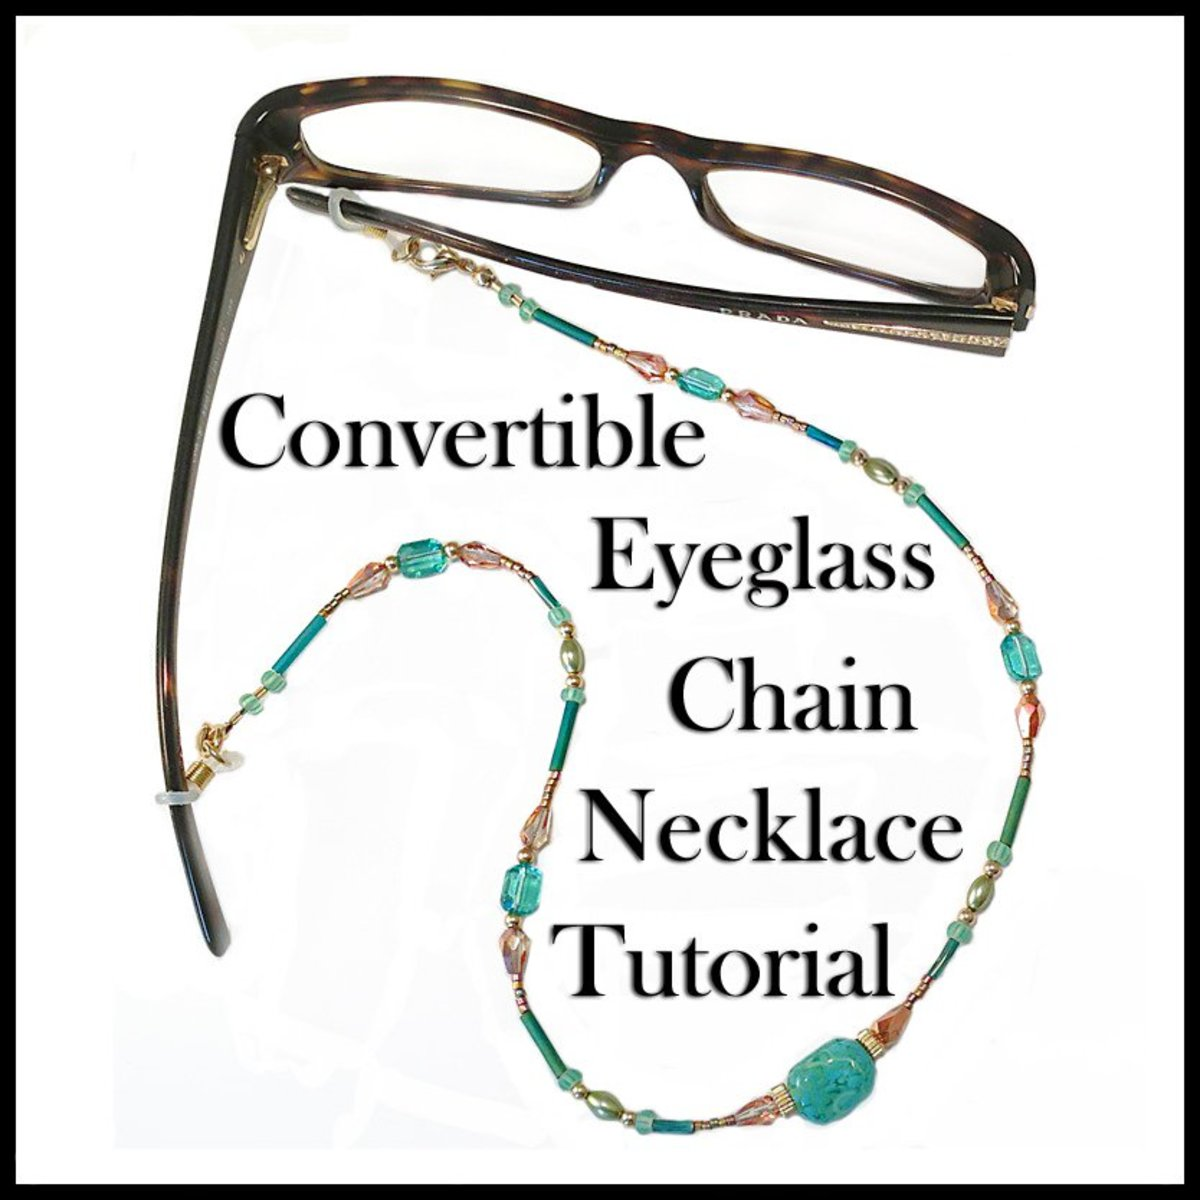 Make a Pretty Beaded Eyeglass Holder That Converts to a Necklace!